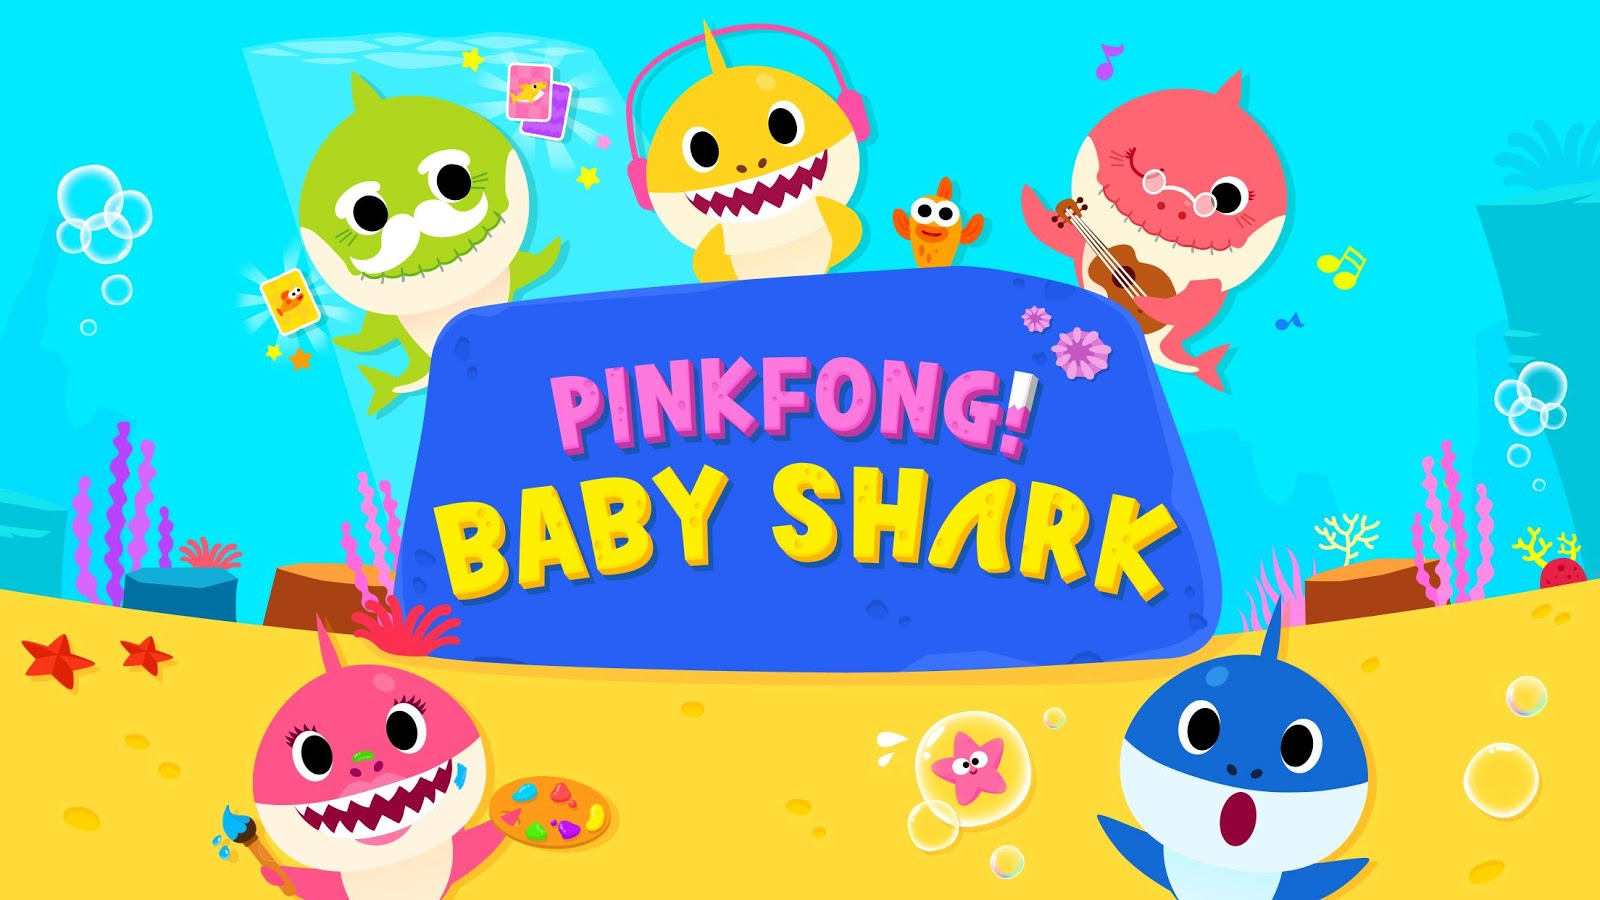 95+] Baby Shark Pinkfong Wallpapers on WallpaperSafari.